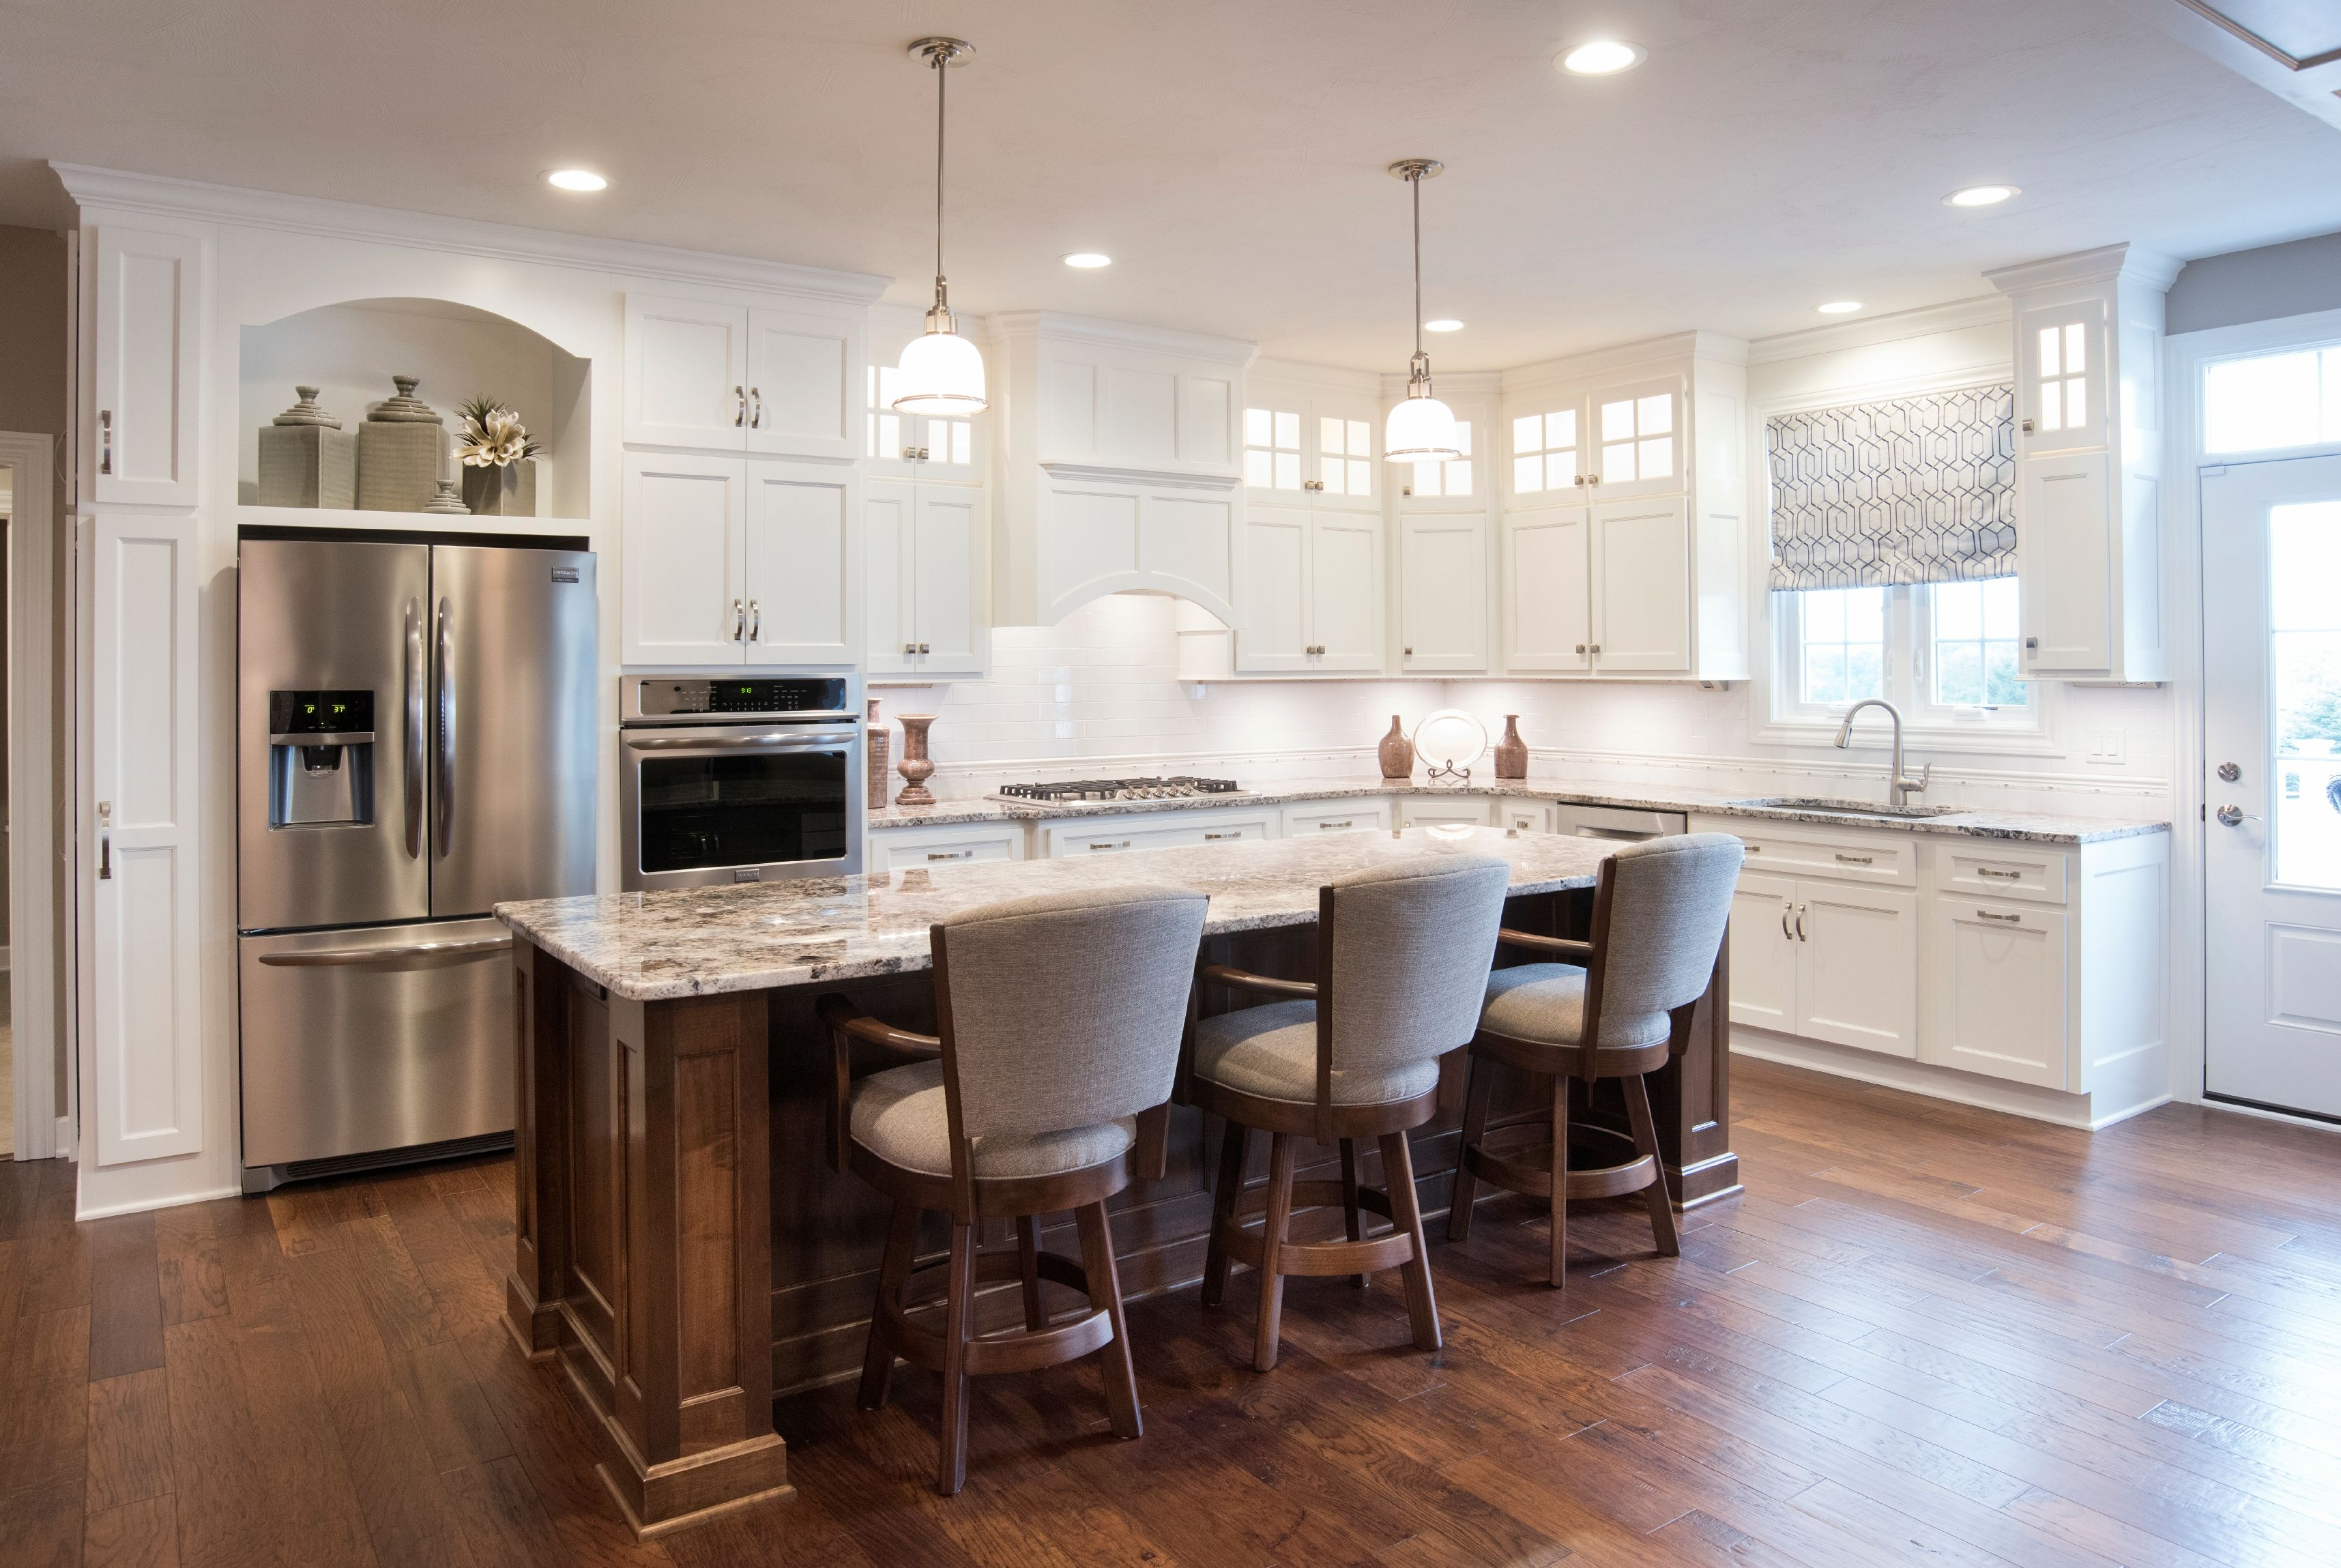 Bright and open modern traditional kitchen designed by Angela Miller ...